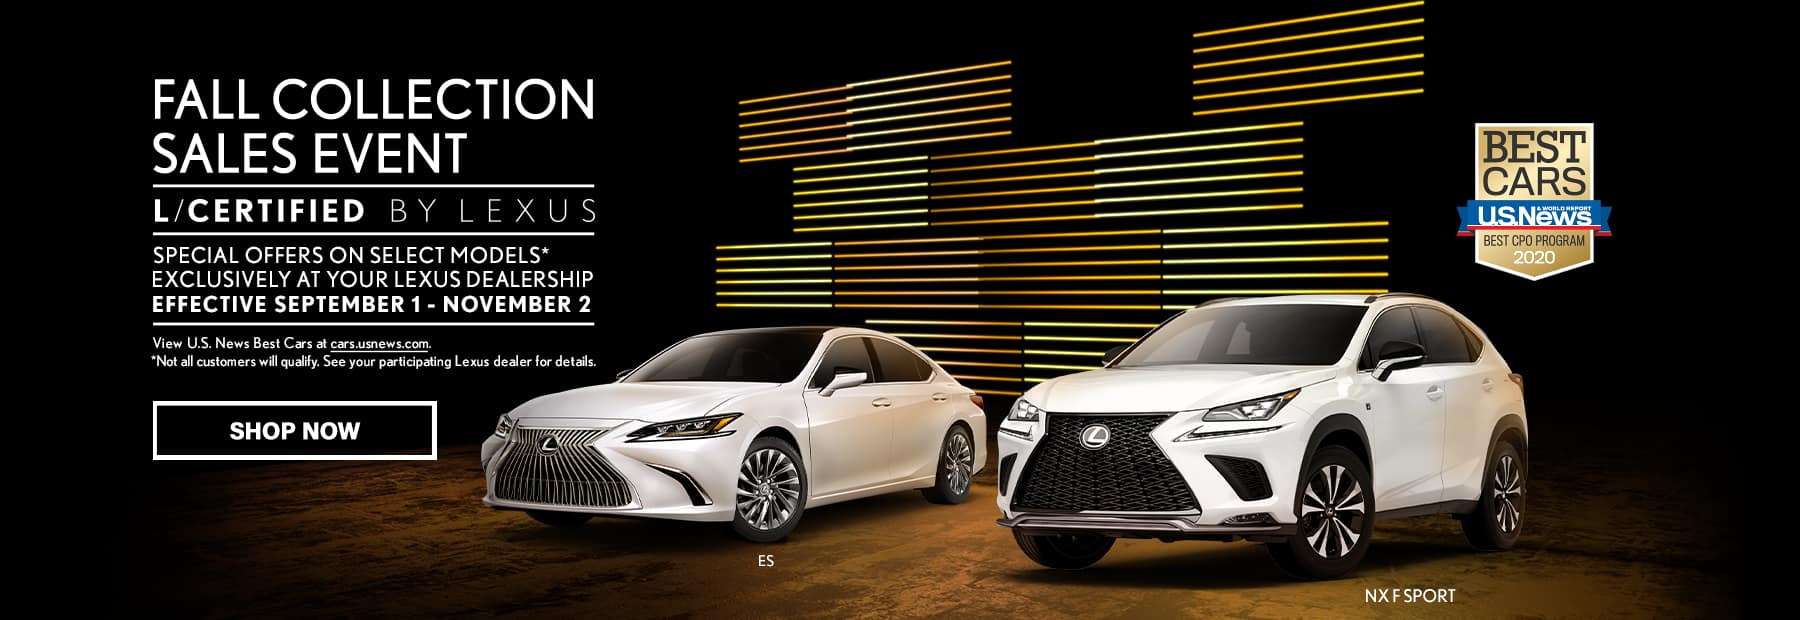 Performance Lexus RiverCenter Fall Collection Sales Event L/Certified